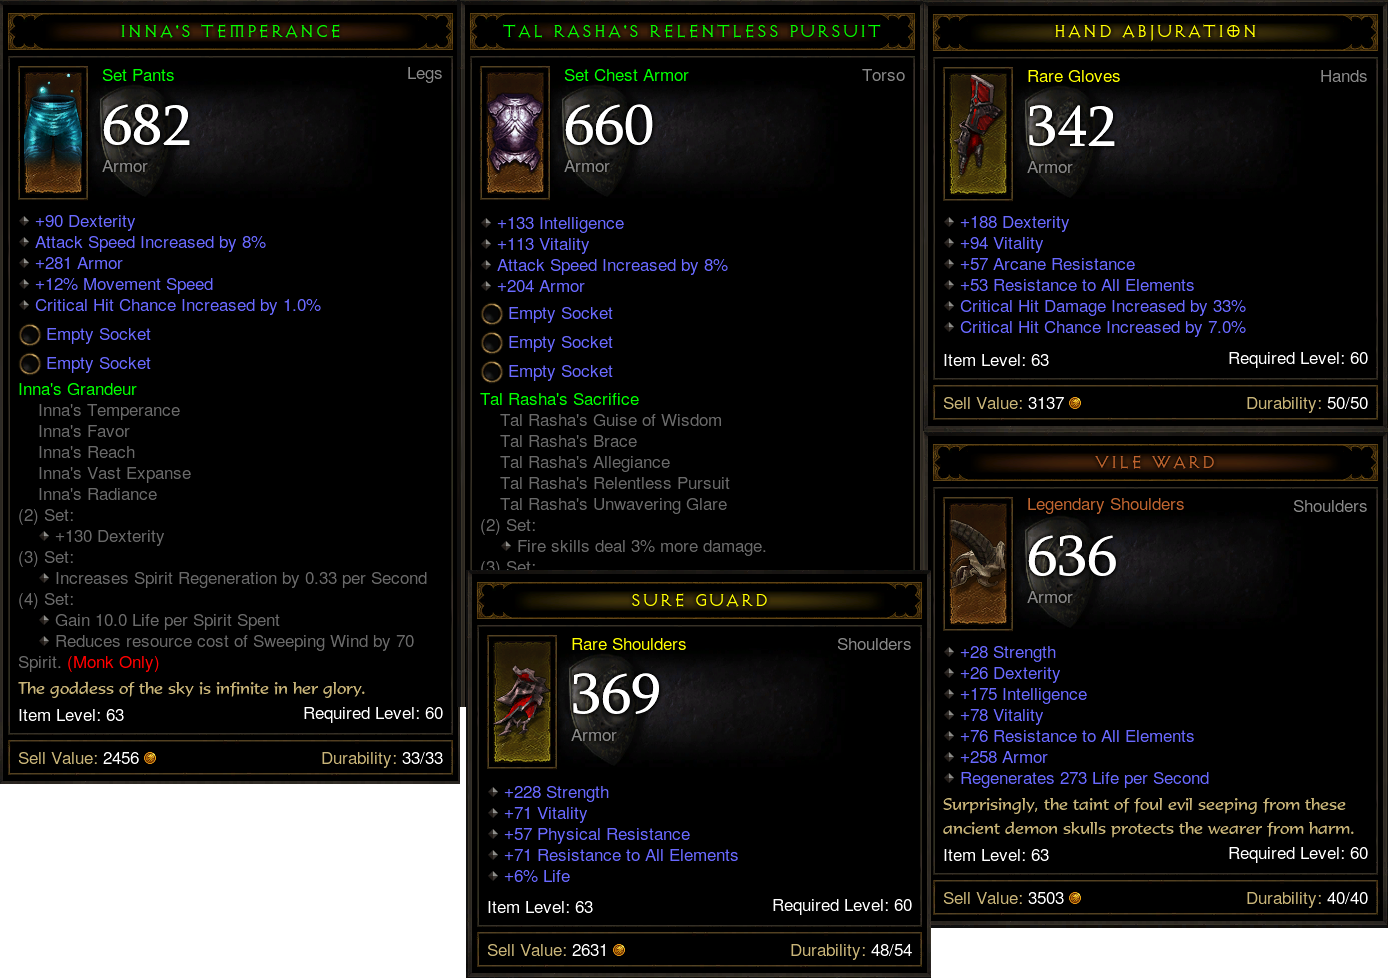 kisada games dont peculiar know what think this just show post trading your diablo legendary